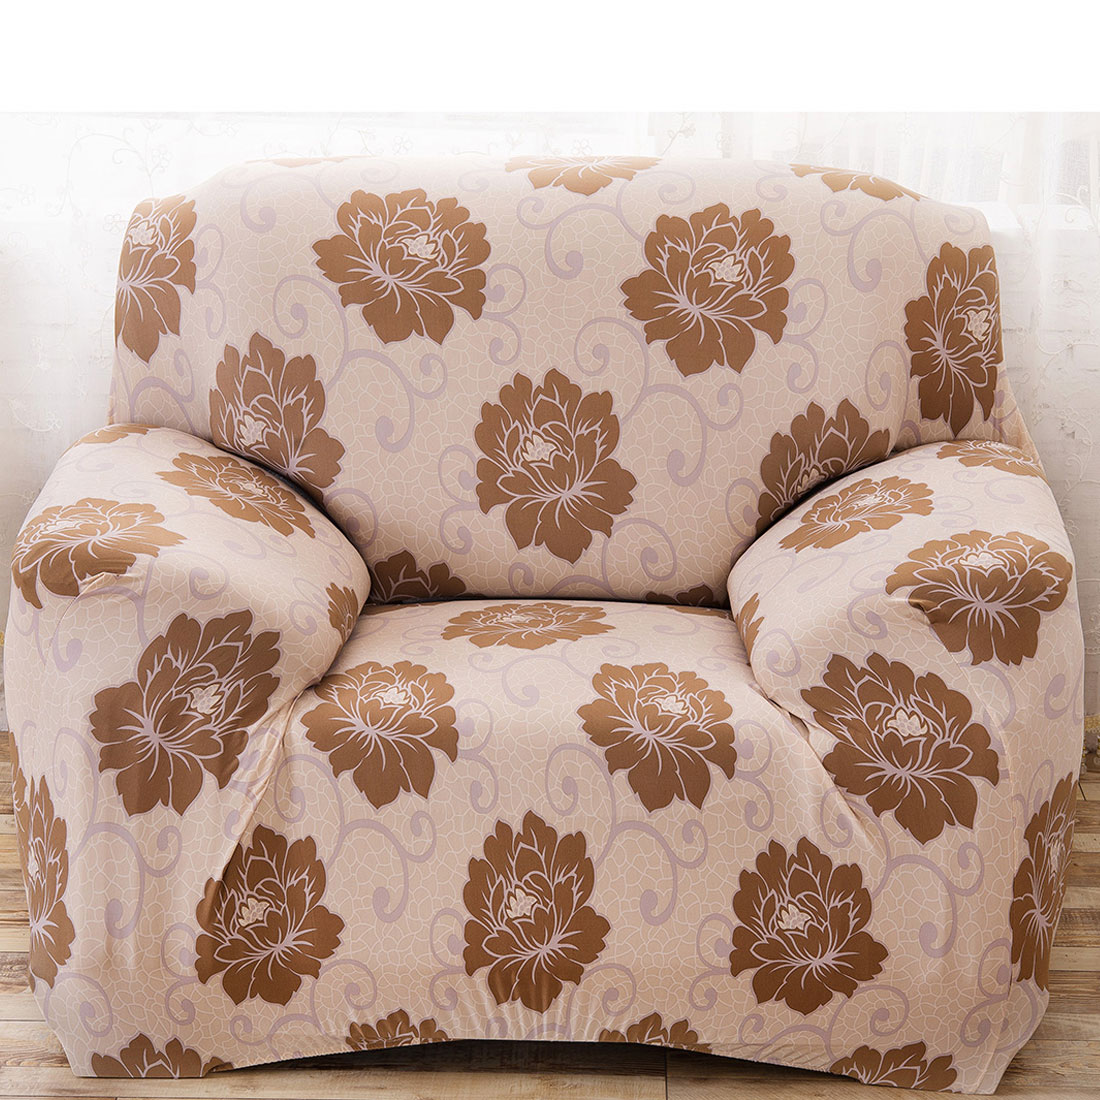 Uxcell Piccocasa Household Polyester Flower Pattern Elastic Sofa